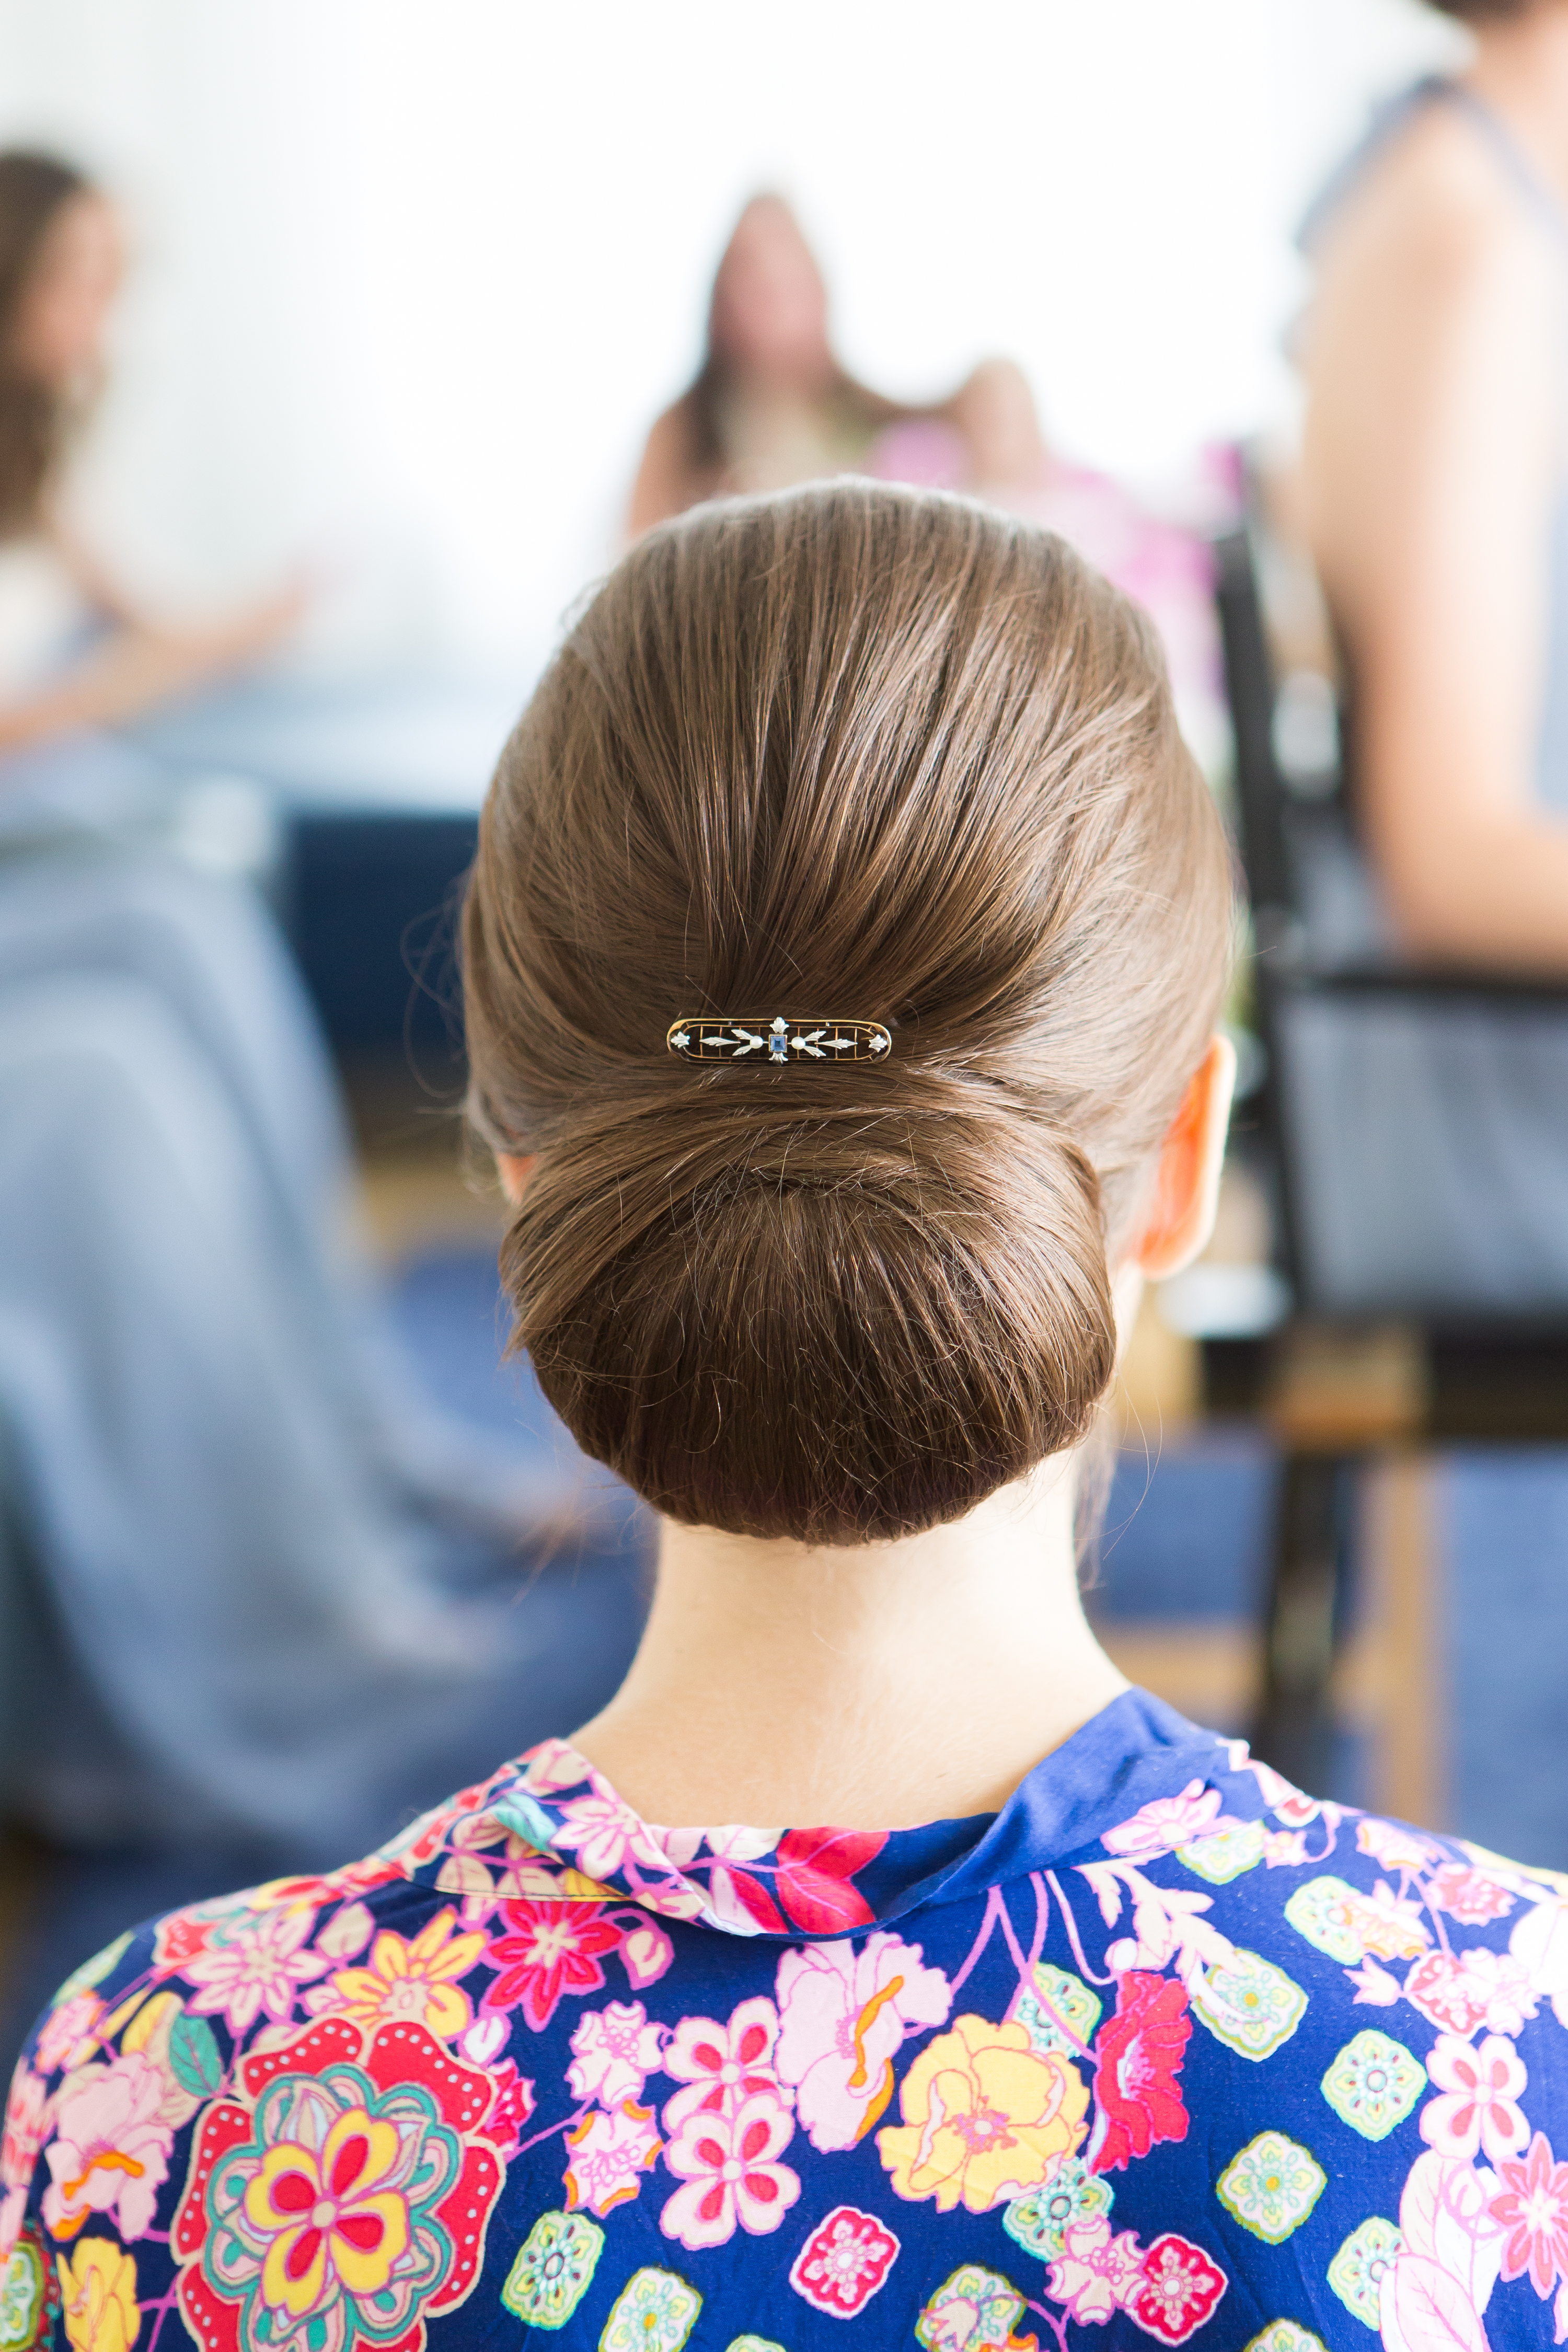 woman with chignon hair